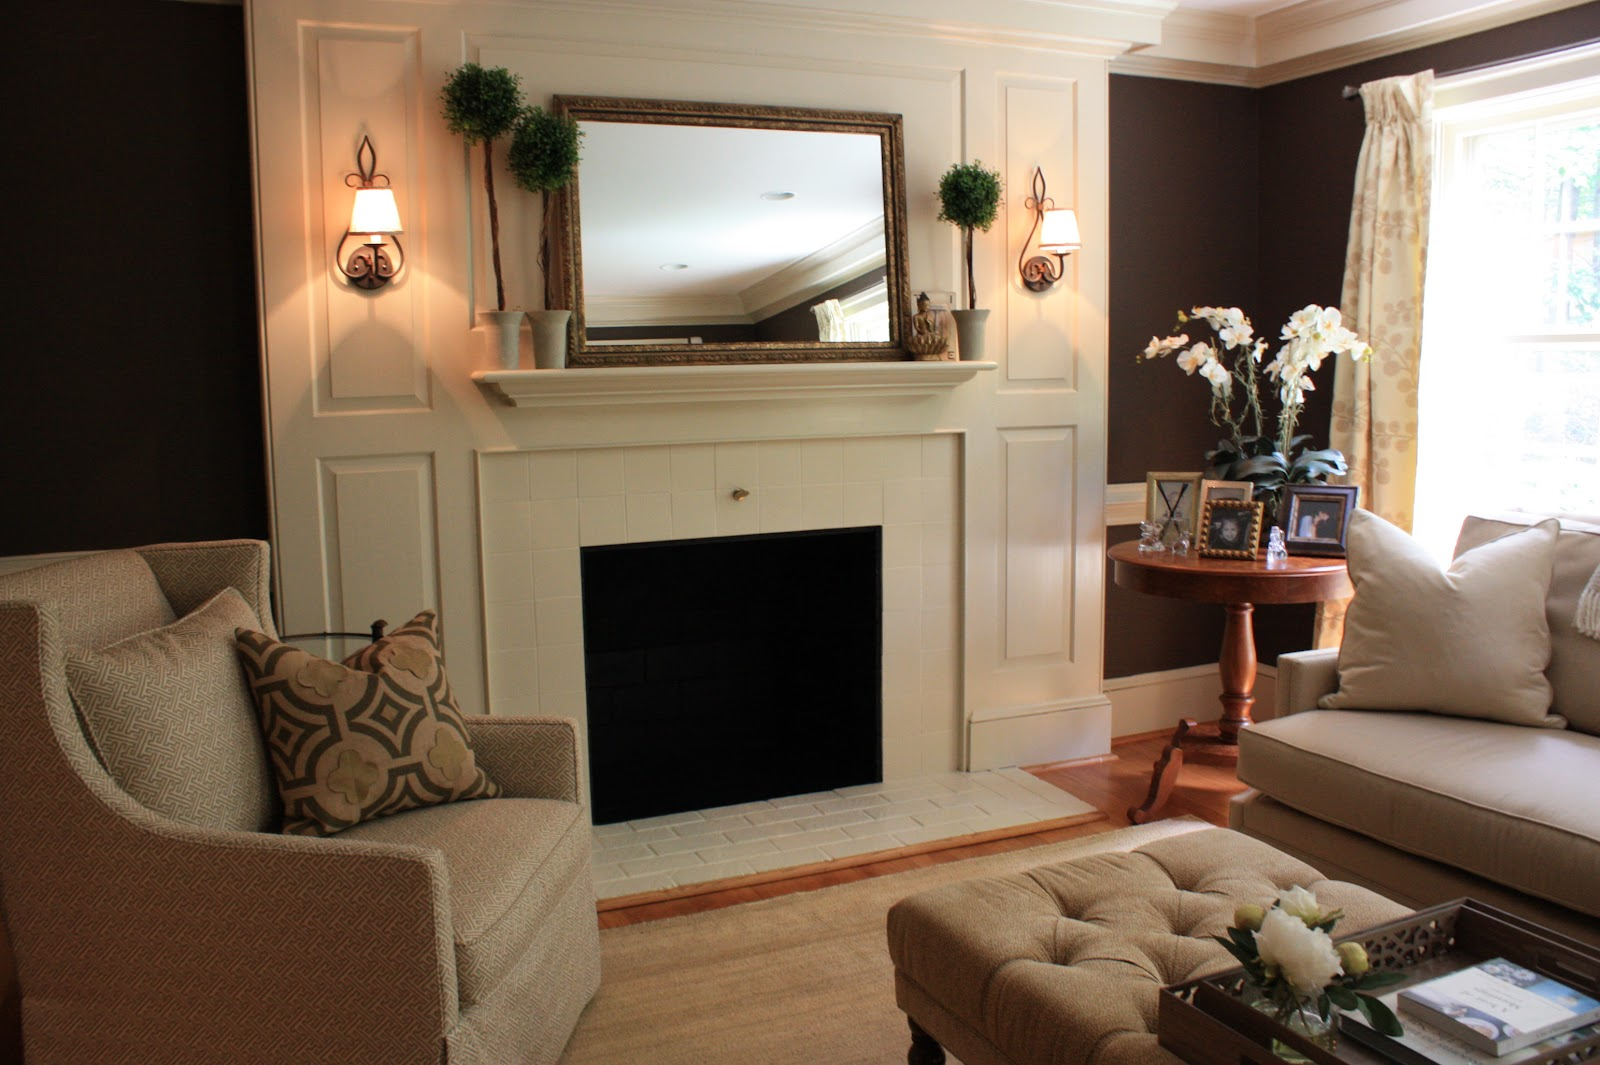 The Nest Egg Cobblers Living Room Before amp After